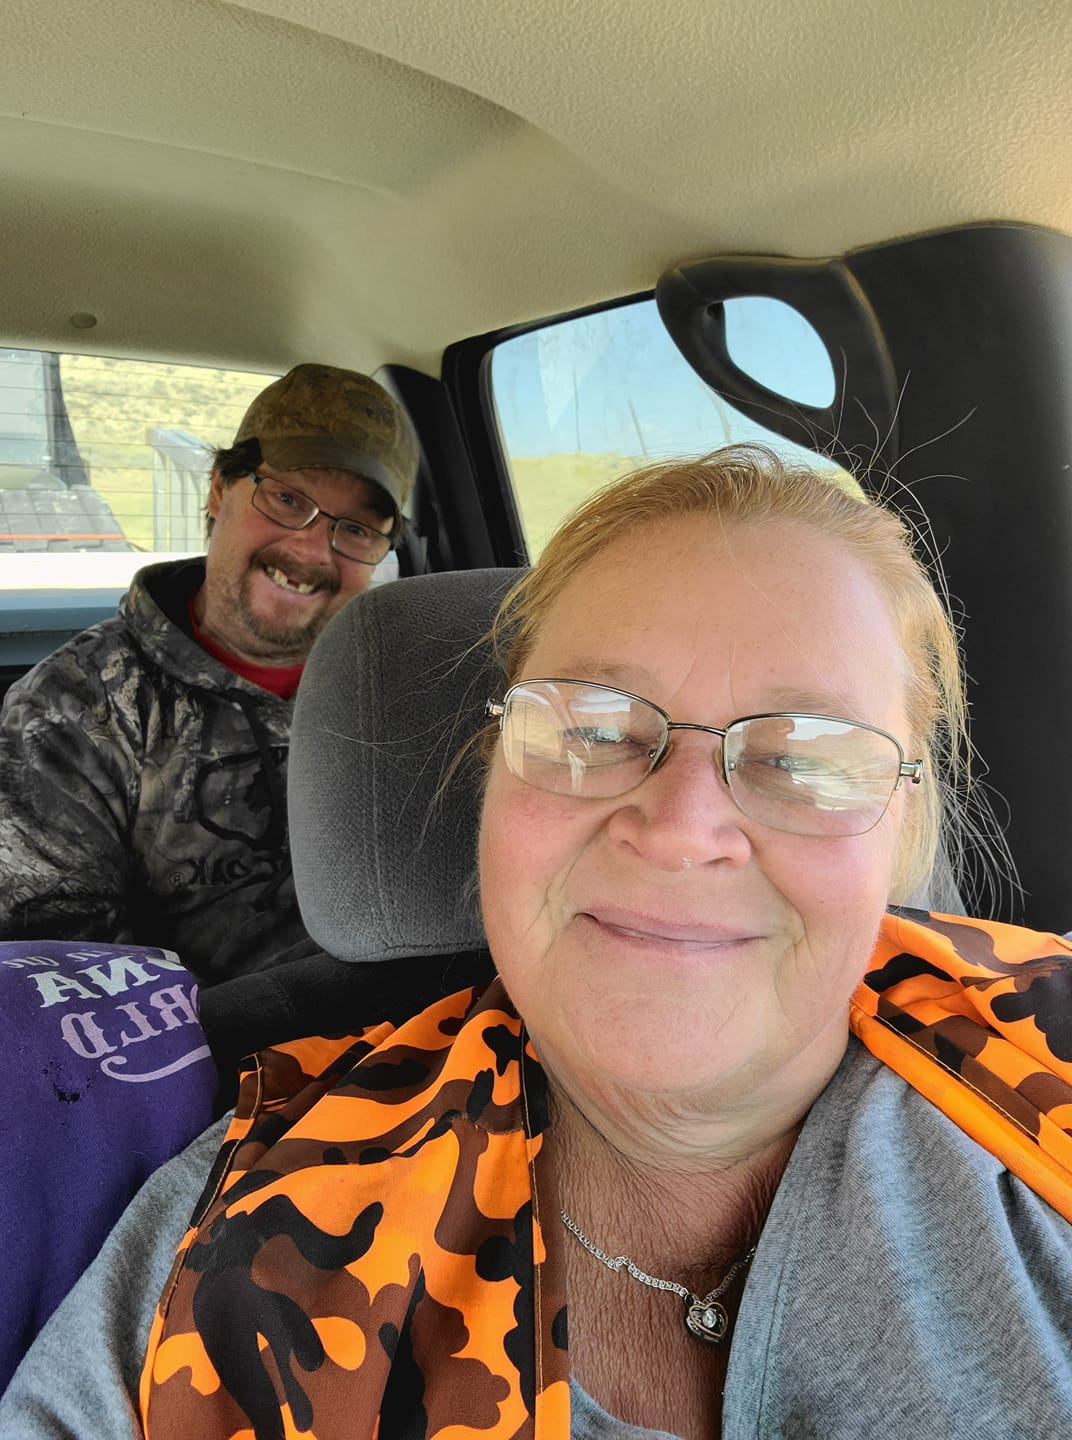 Darcy Haynie met her husband in California in 1988 and were married in 1989. They will celebrate 32 years of marriage this year.